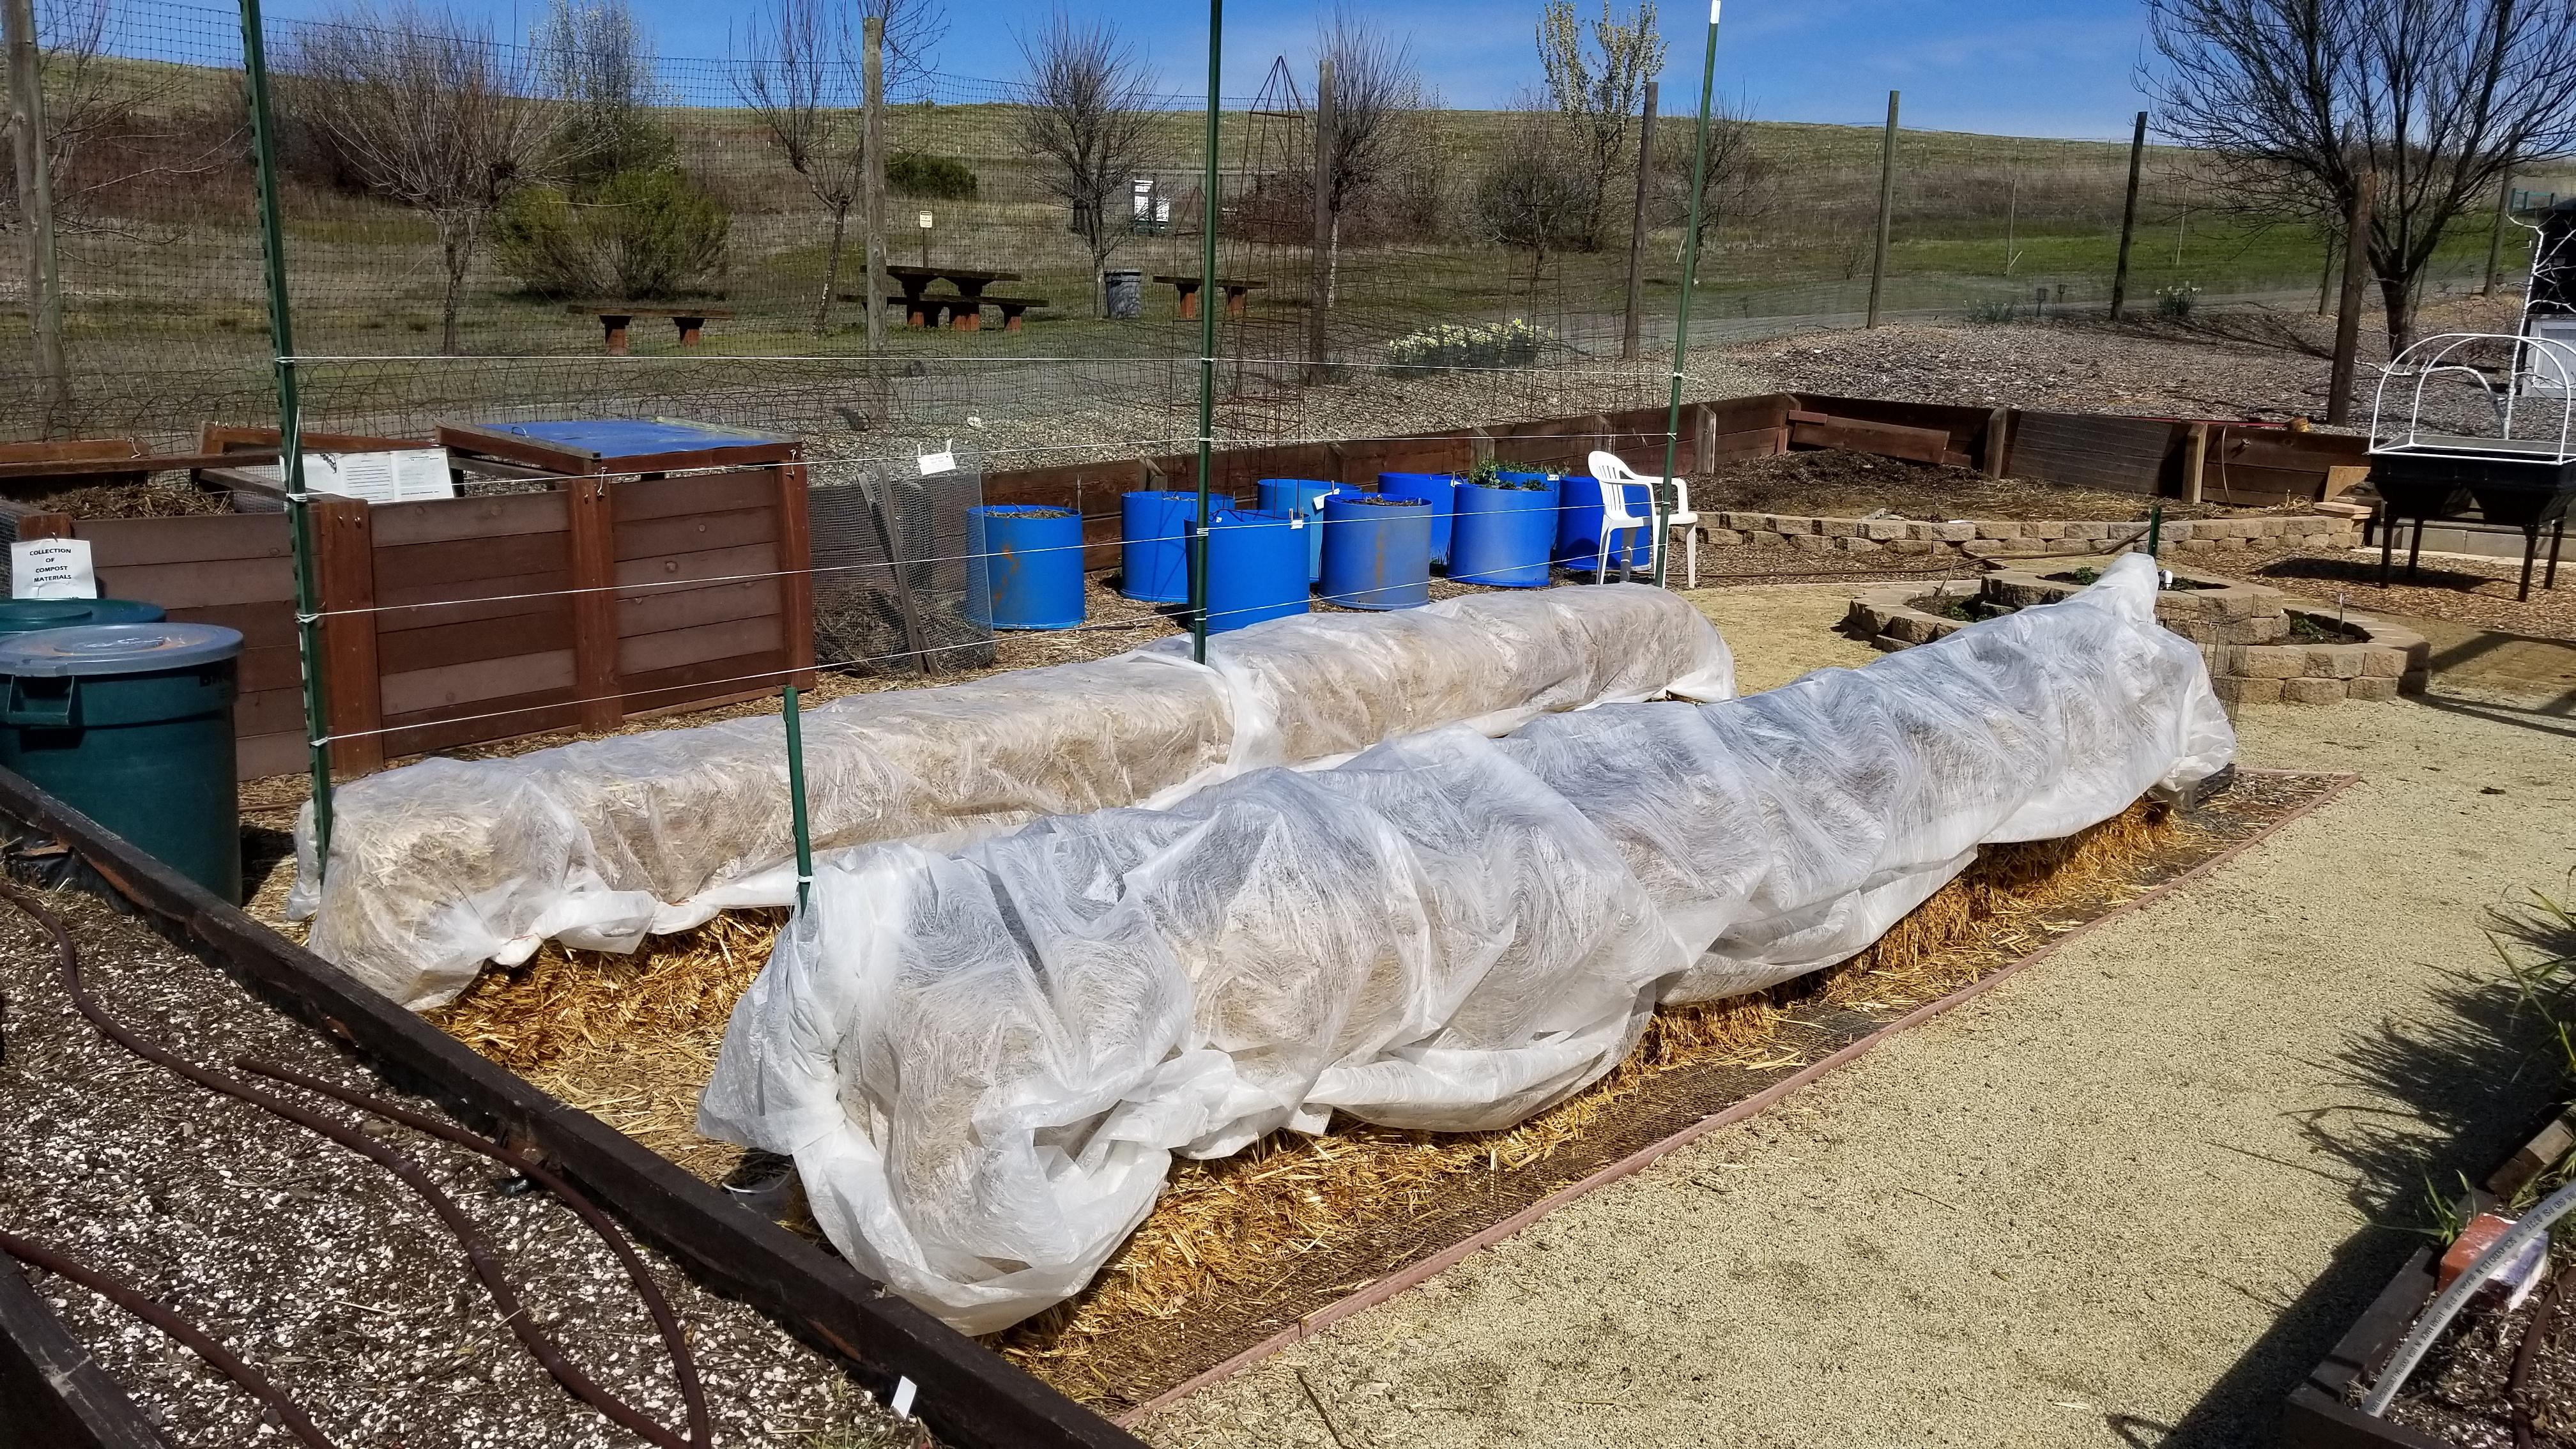 3-7-2018, The addition of row covers for weather and critter protection